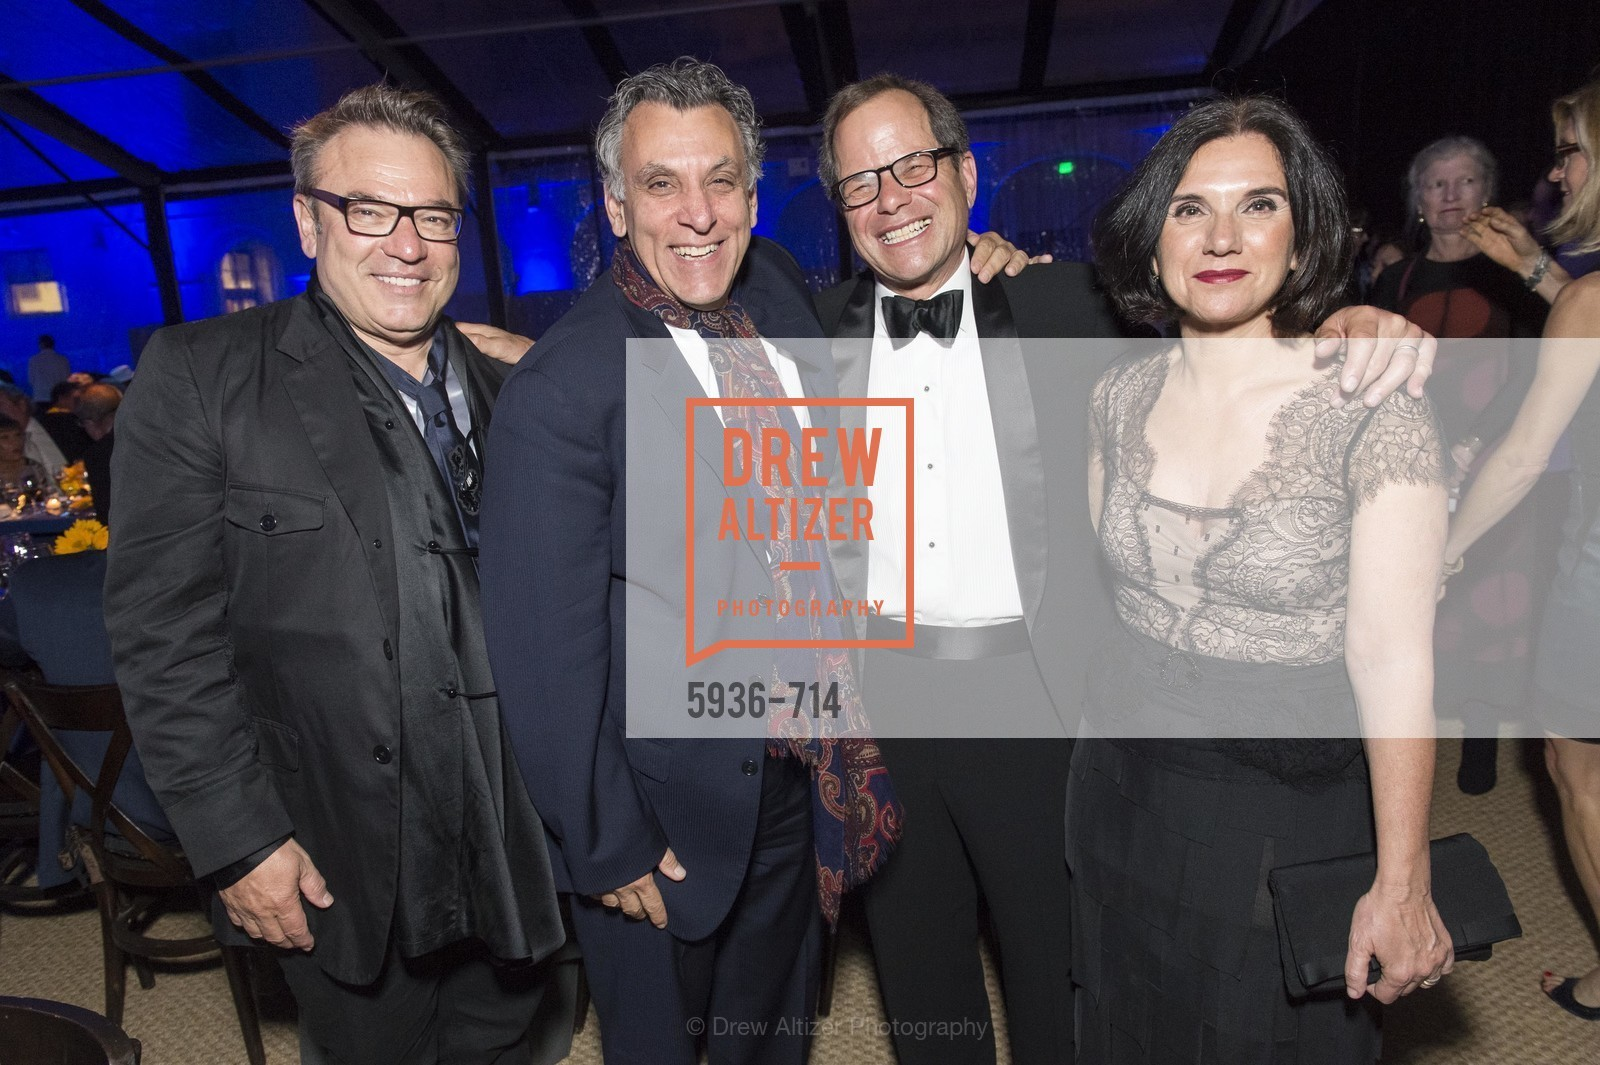 Stanlee Gatti, Jeff Levenson, Randall Kline, Teresa Pantaleo, SFJAZZ Gala 2015 Honors Joni Mitchell with Lifetime Achievement Award, US, May 9th, 2015,Drew Altizer, Drew Altizer Photography, full-service agency, private events, San Francisco photographer, photographer california